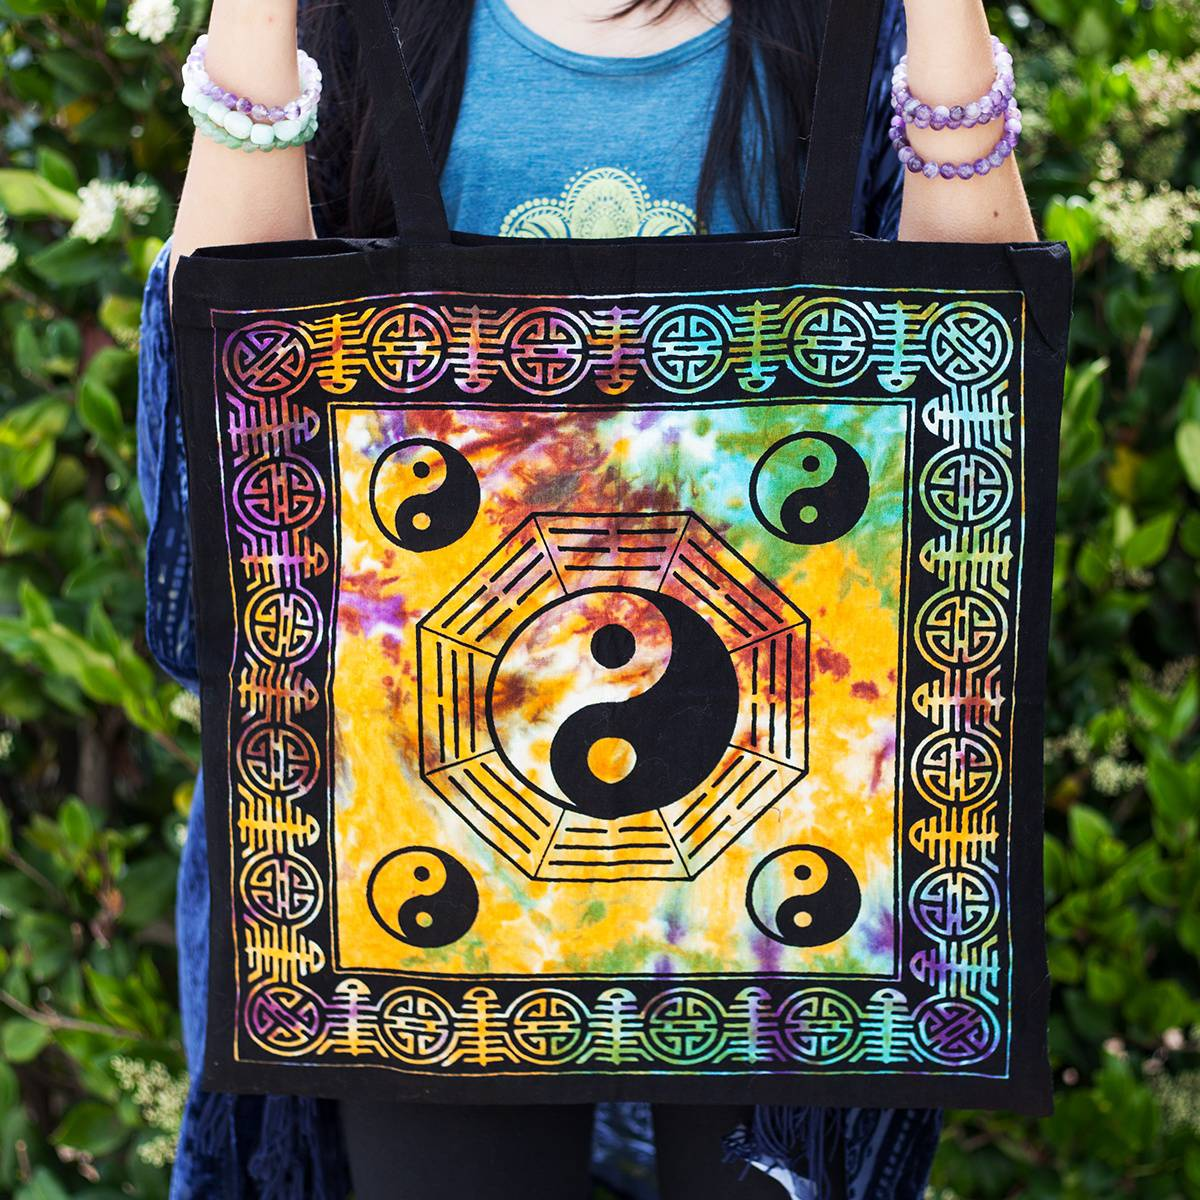 4ce719809 Yin Yang Tie Dye Tote Bags for balance and stylish goddess adornment